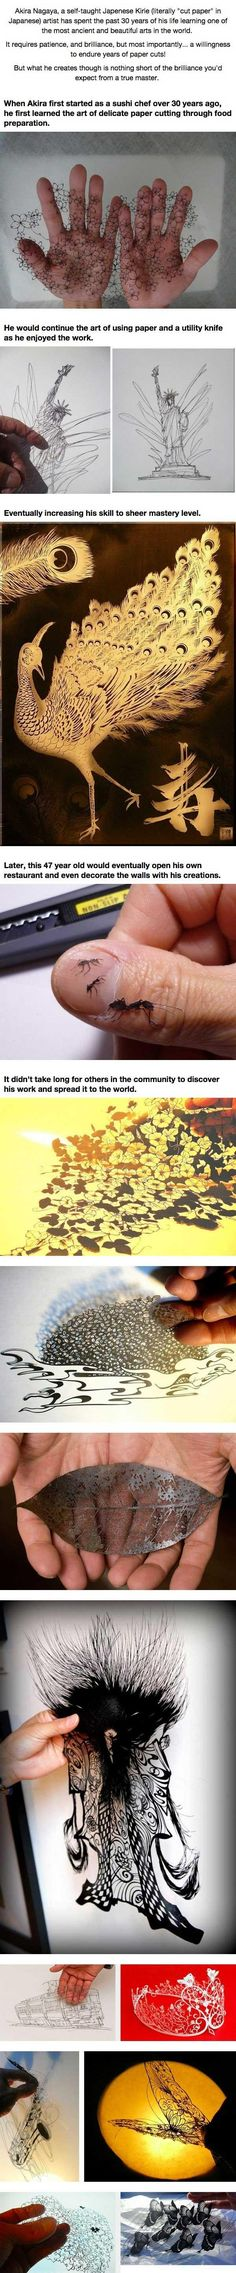 Not Anime but still amazing Japanese art - Paper art by Akira Nagaya - my goodness, look at that leaf!?